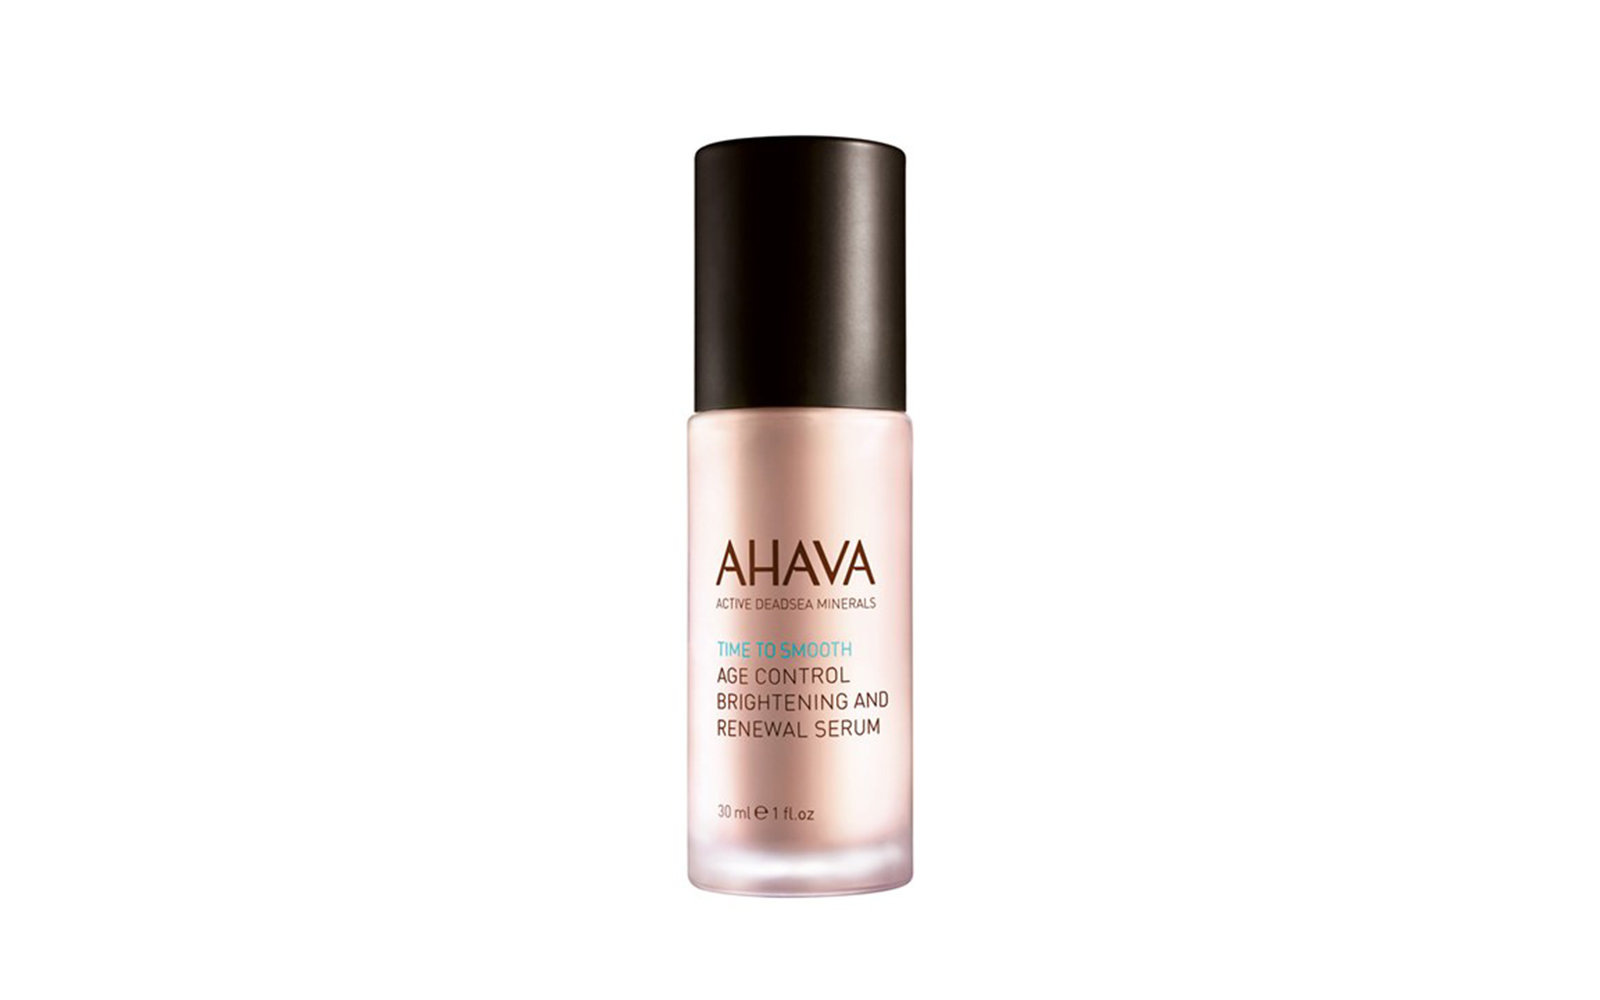 AHAVA Time to Smooth Age Control Brightening & Skin Renewal Serum